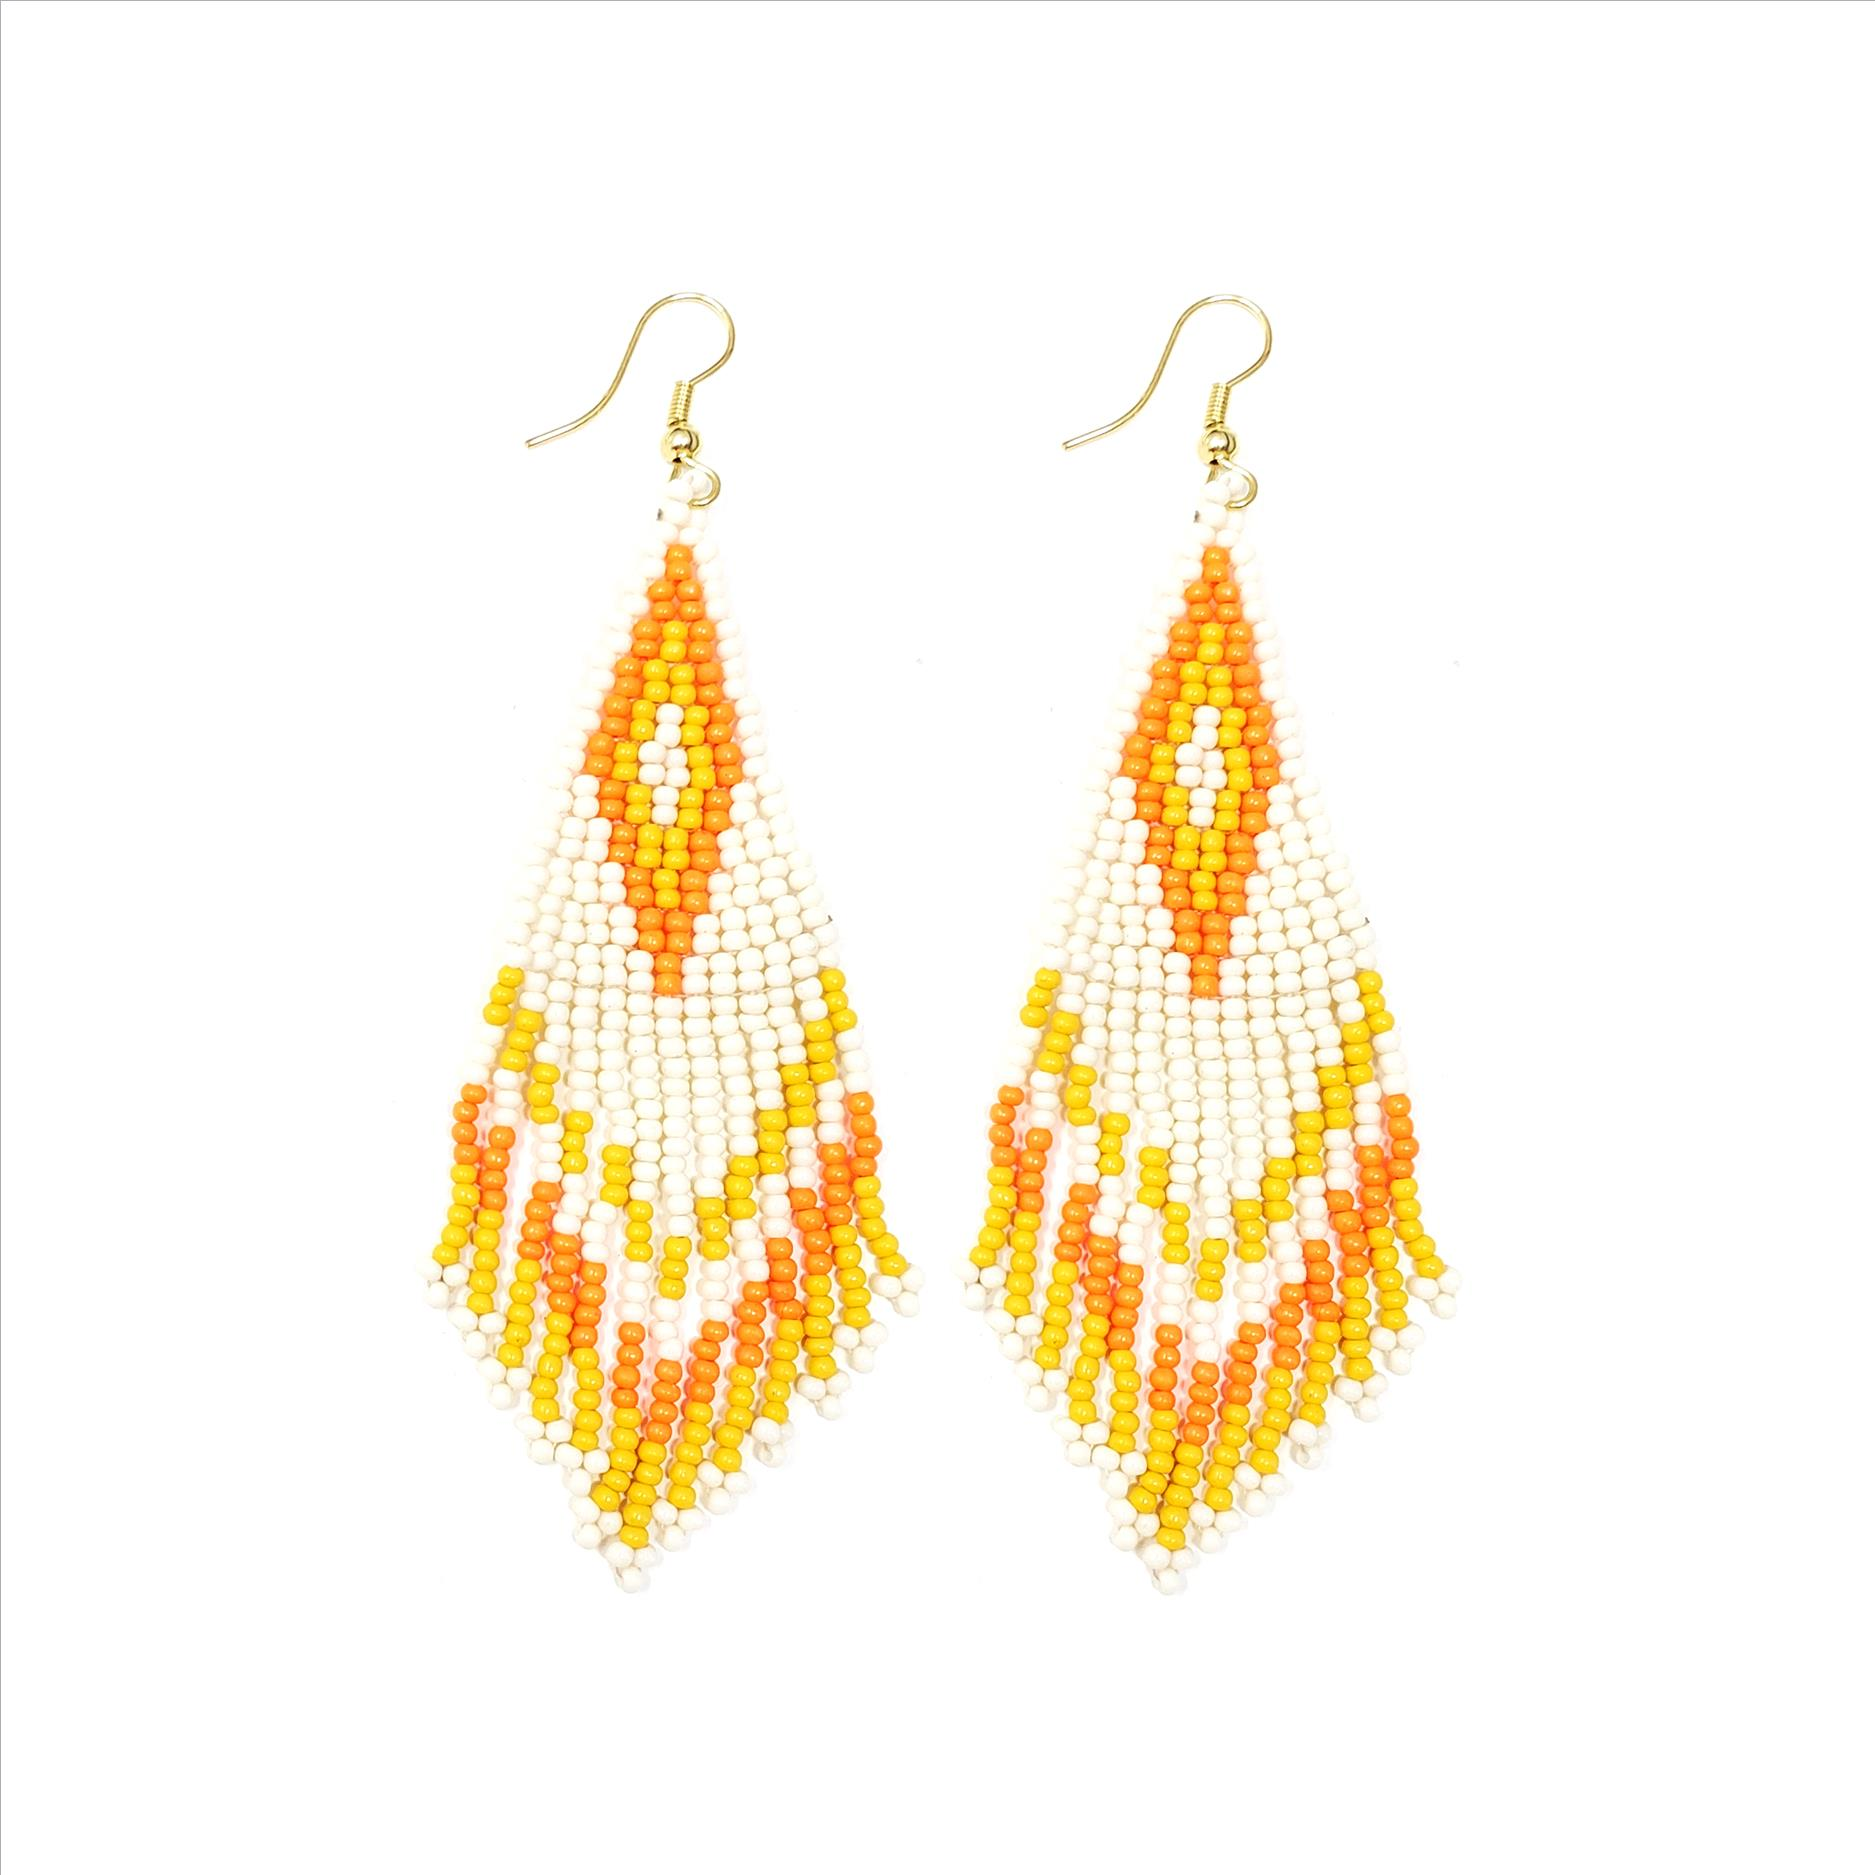 Aztec Design Glass Bead Dangle Earrings - White / Orange / Yellow